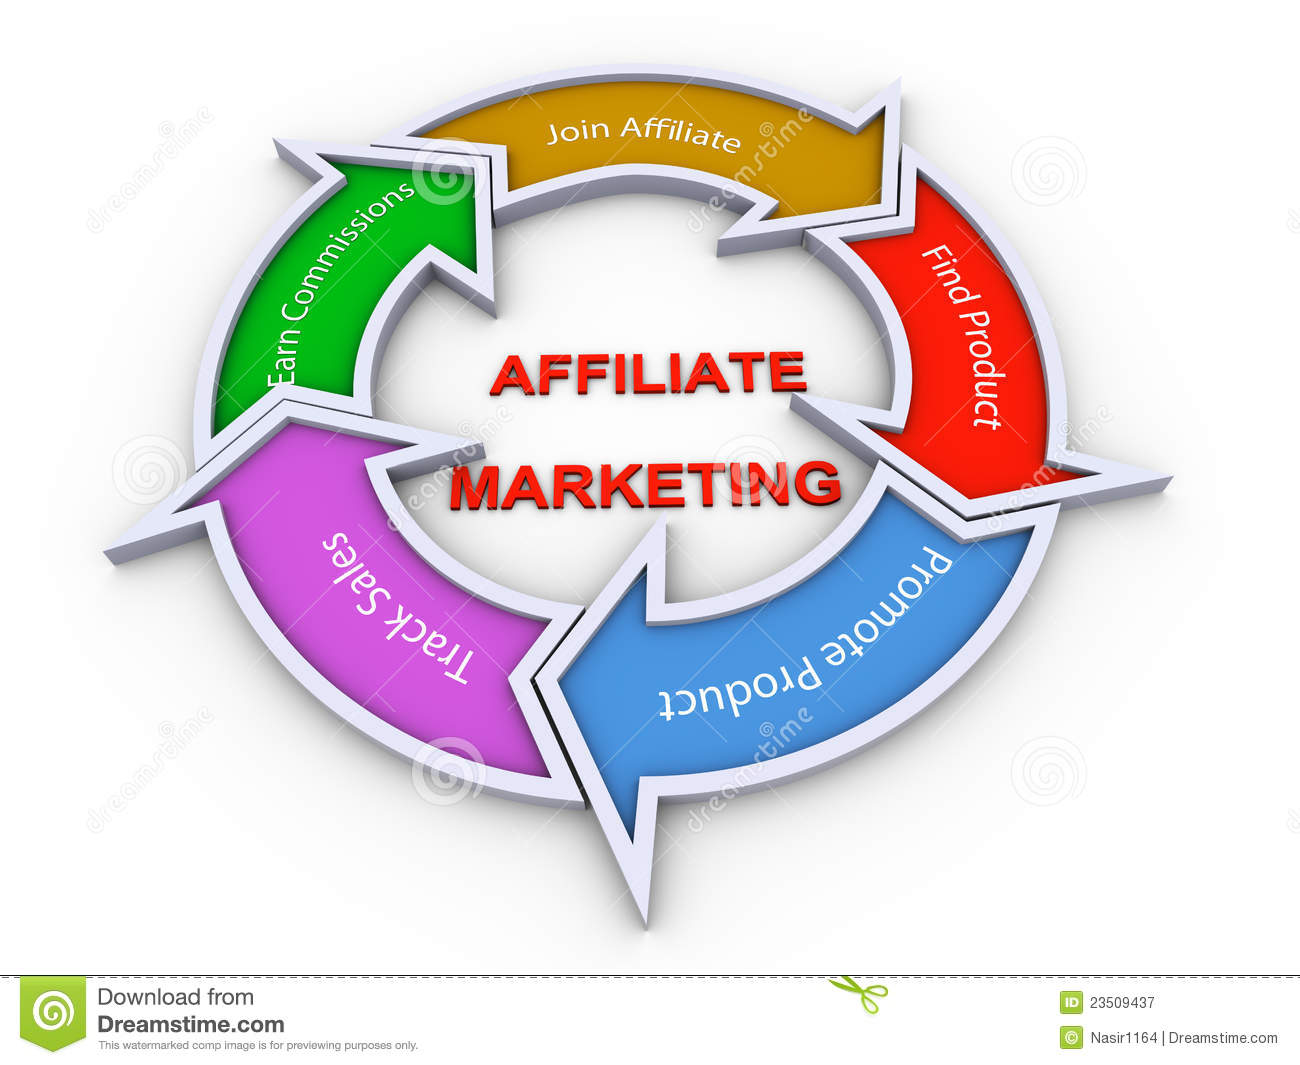 affiliate-marketing-flowchart-23509437.jpg